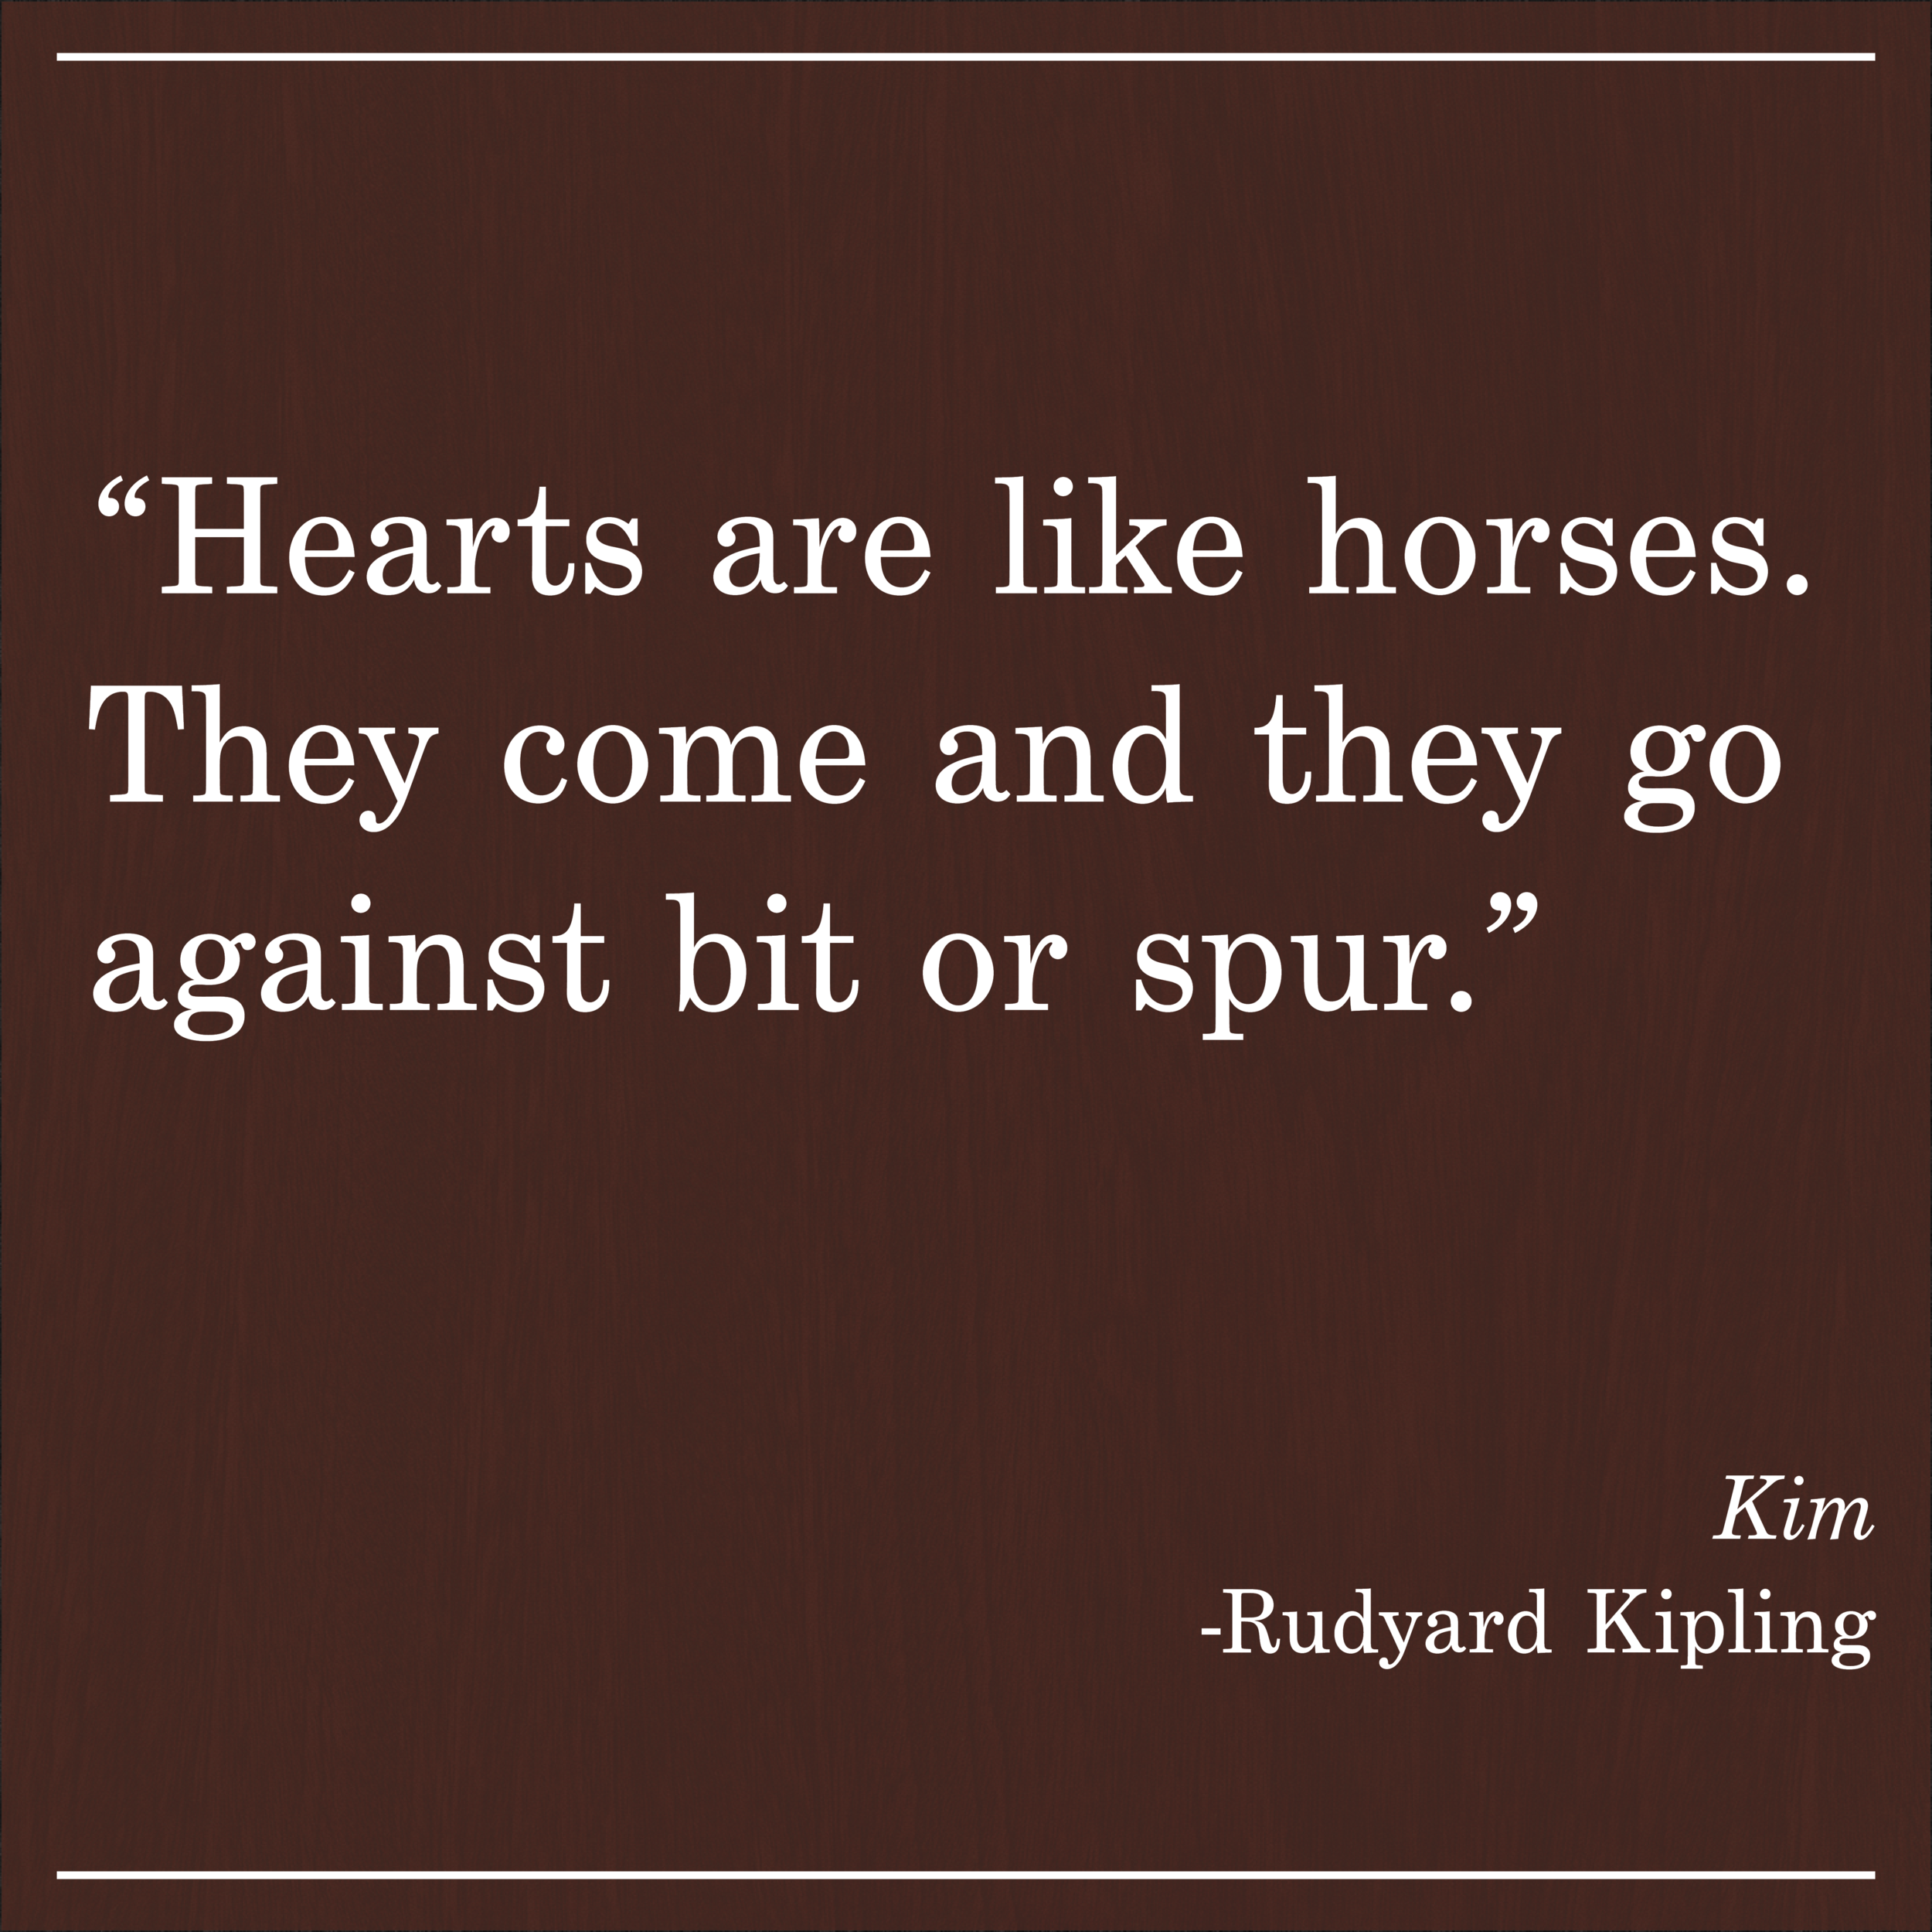 Daily Quote Kim by Rudyard Kipling